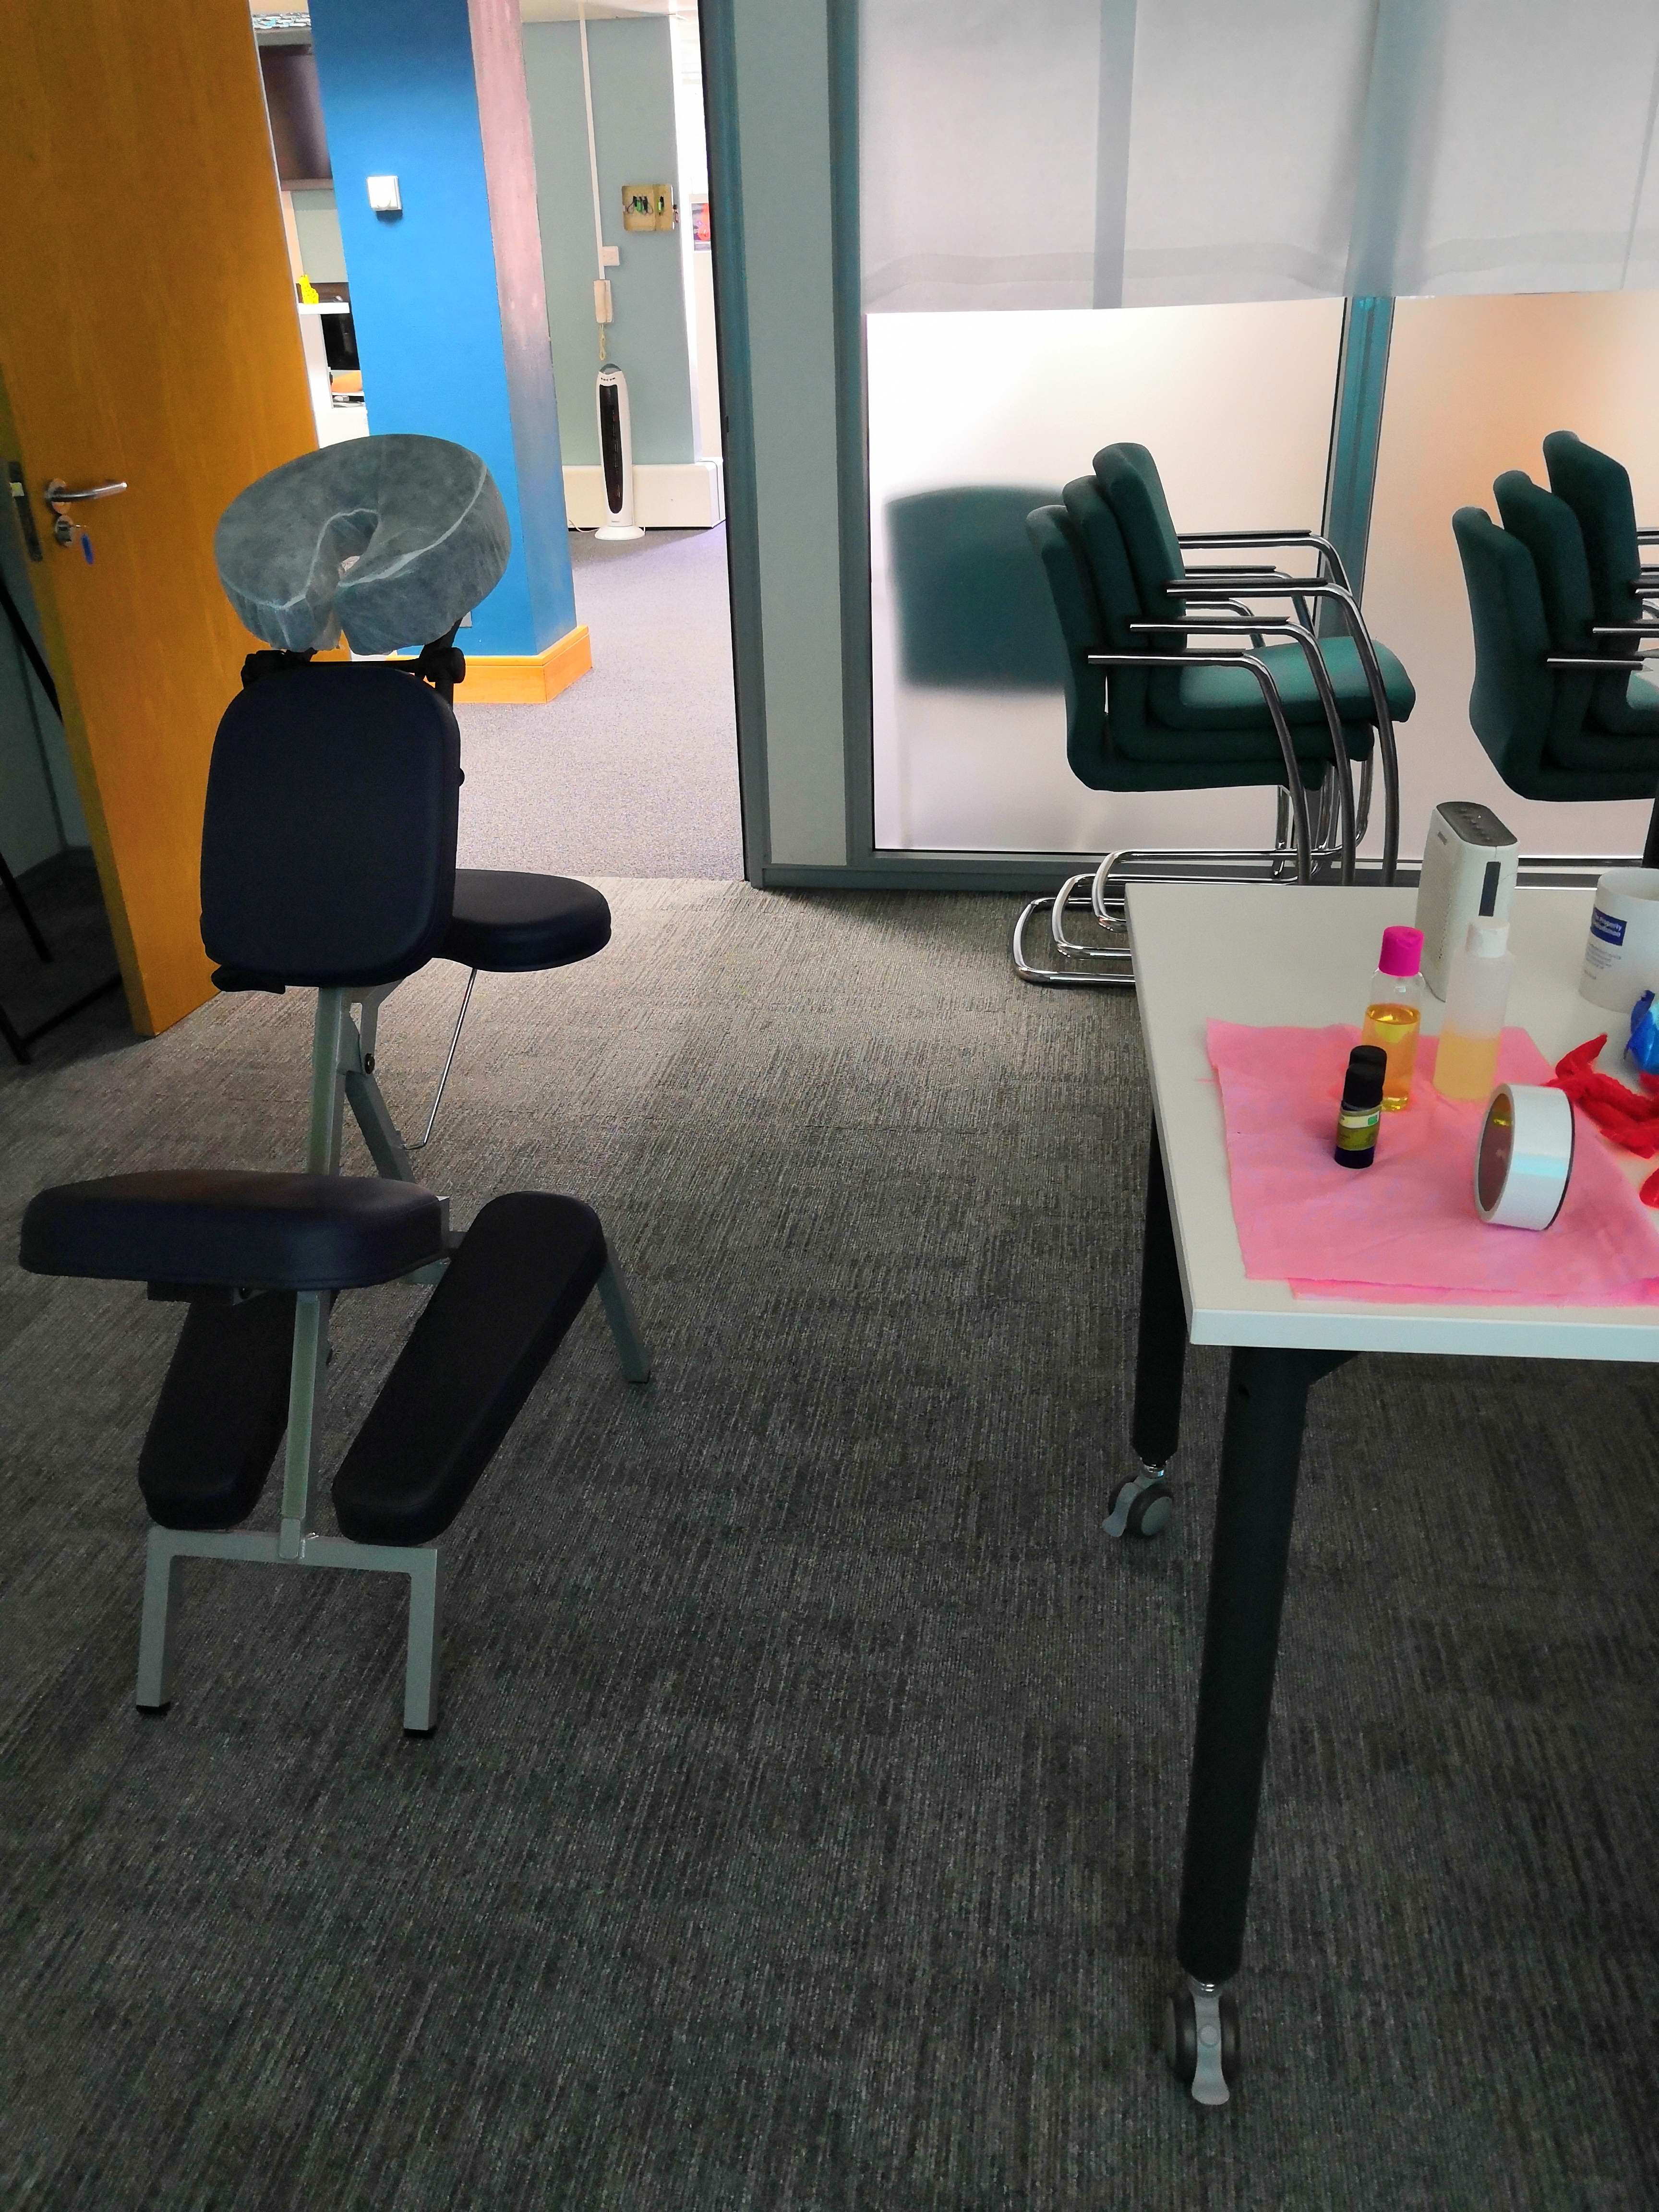 massage therapy at your workplace